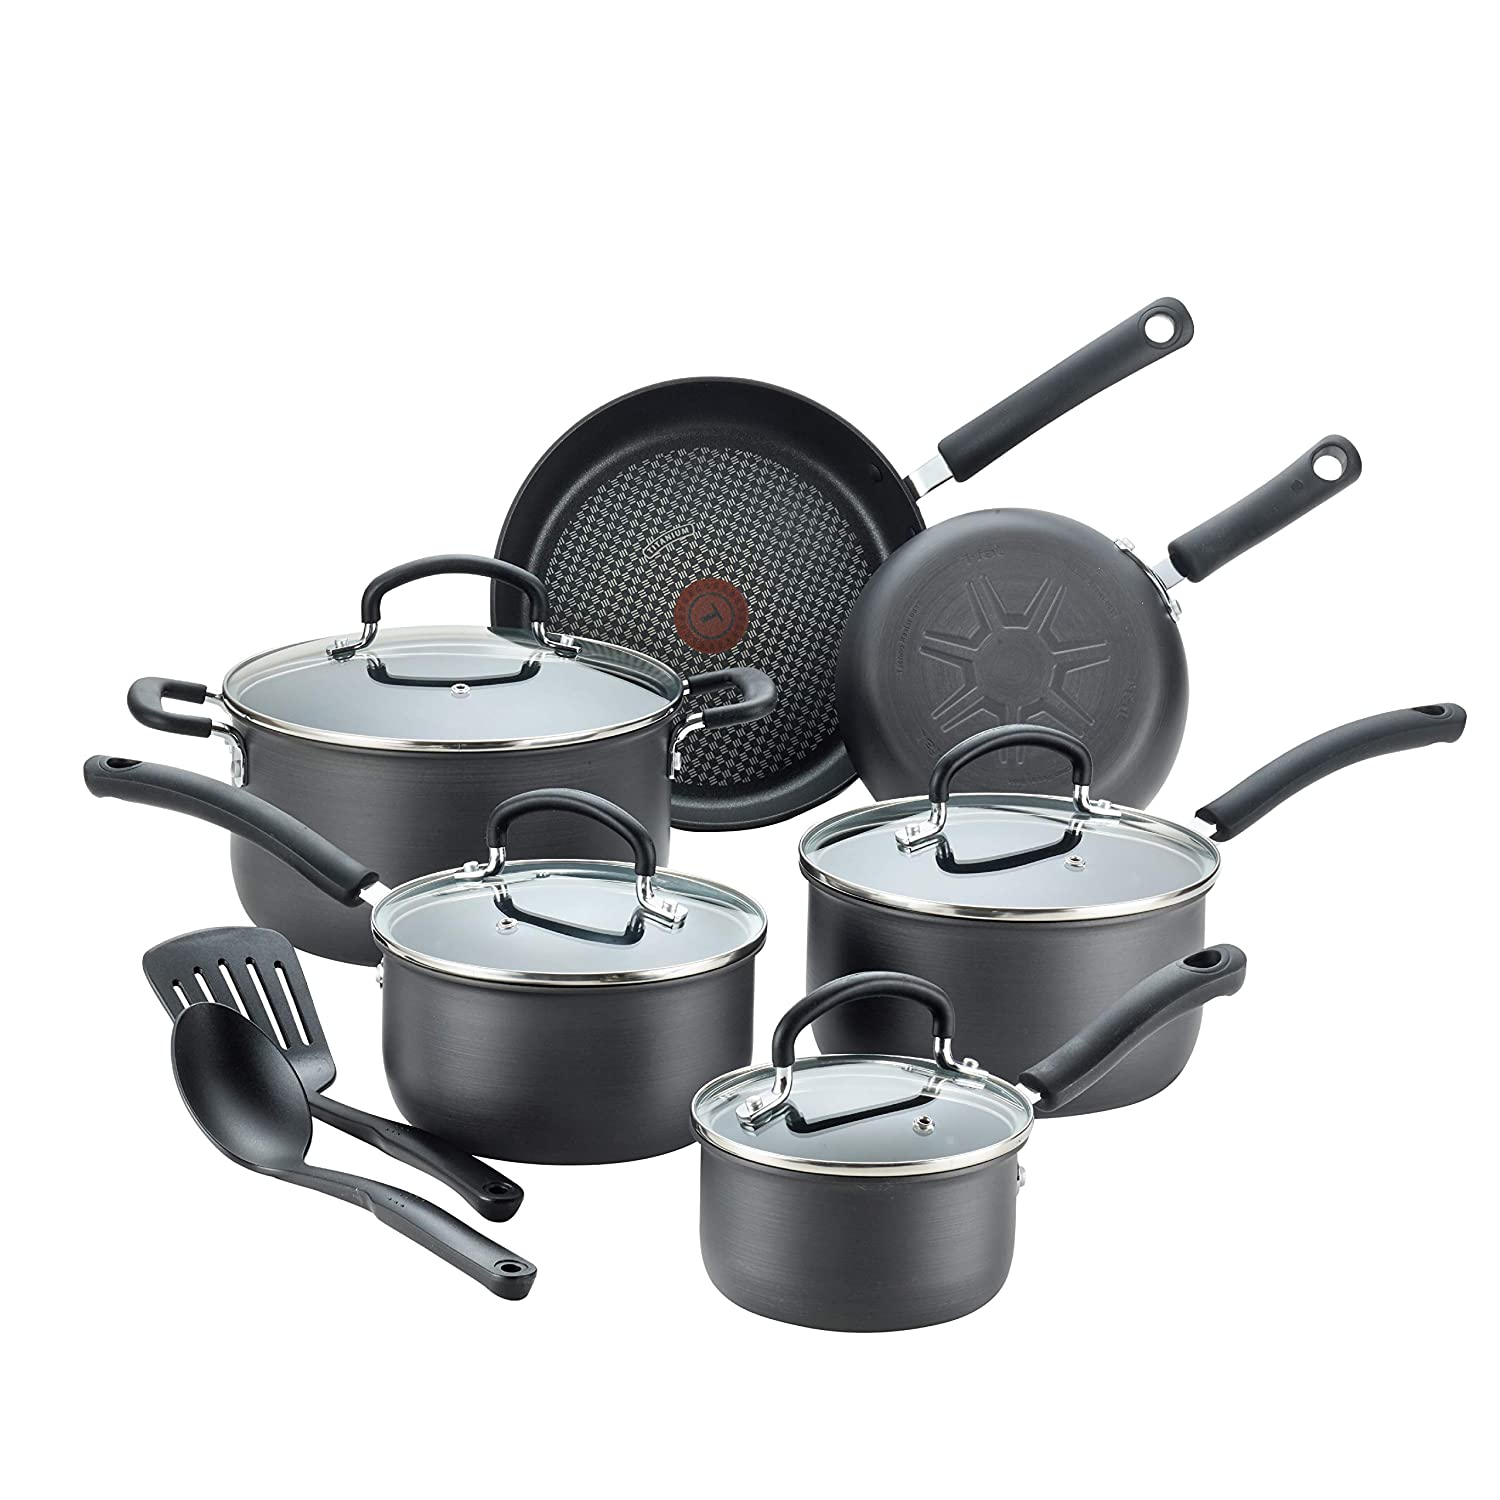 Top 5 Best Cookware Under $200 (2020 Reviews & Buying Guide) 1